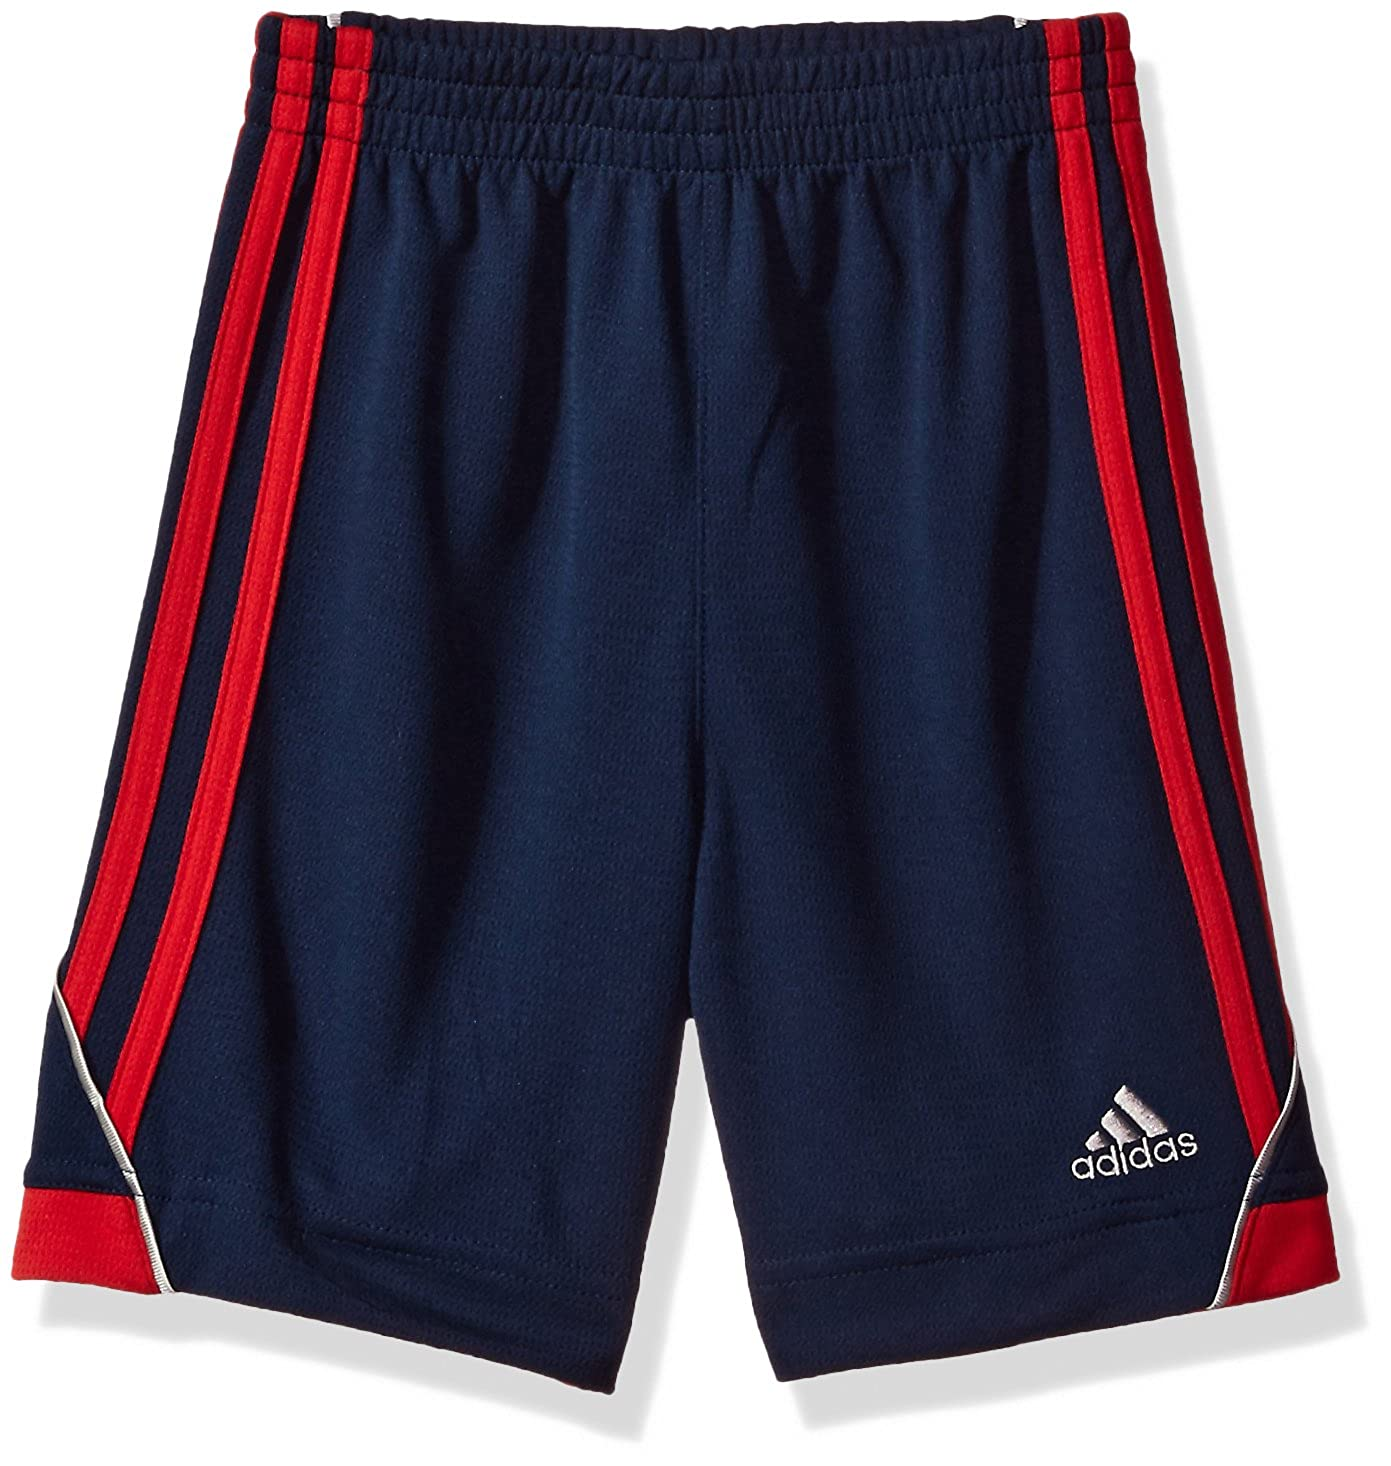 abafa05782e9 Adidas Boys' Dynamic Speed ShortYouth